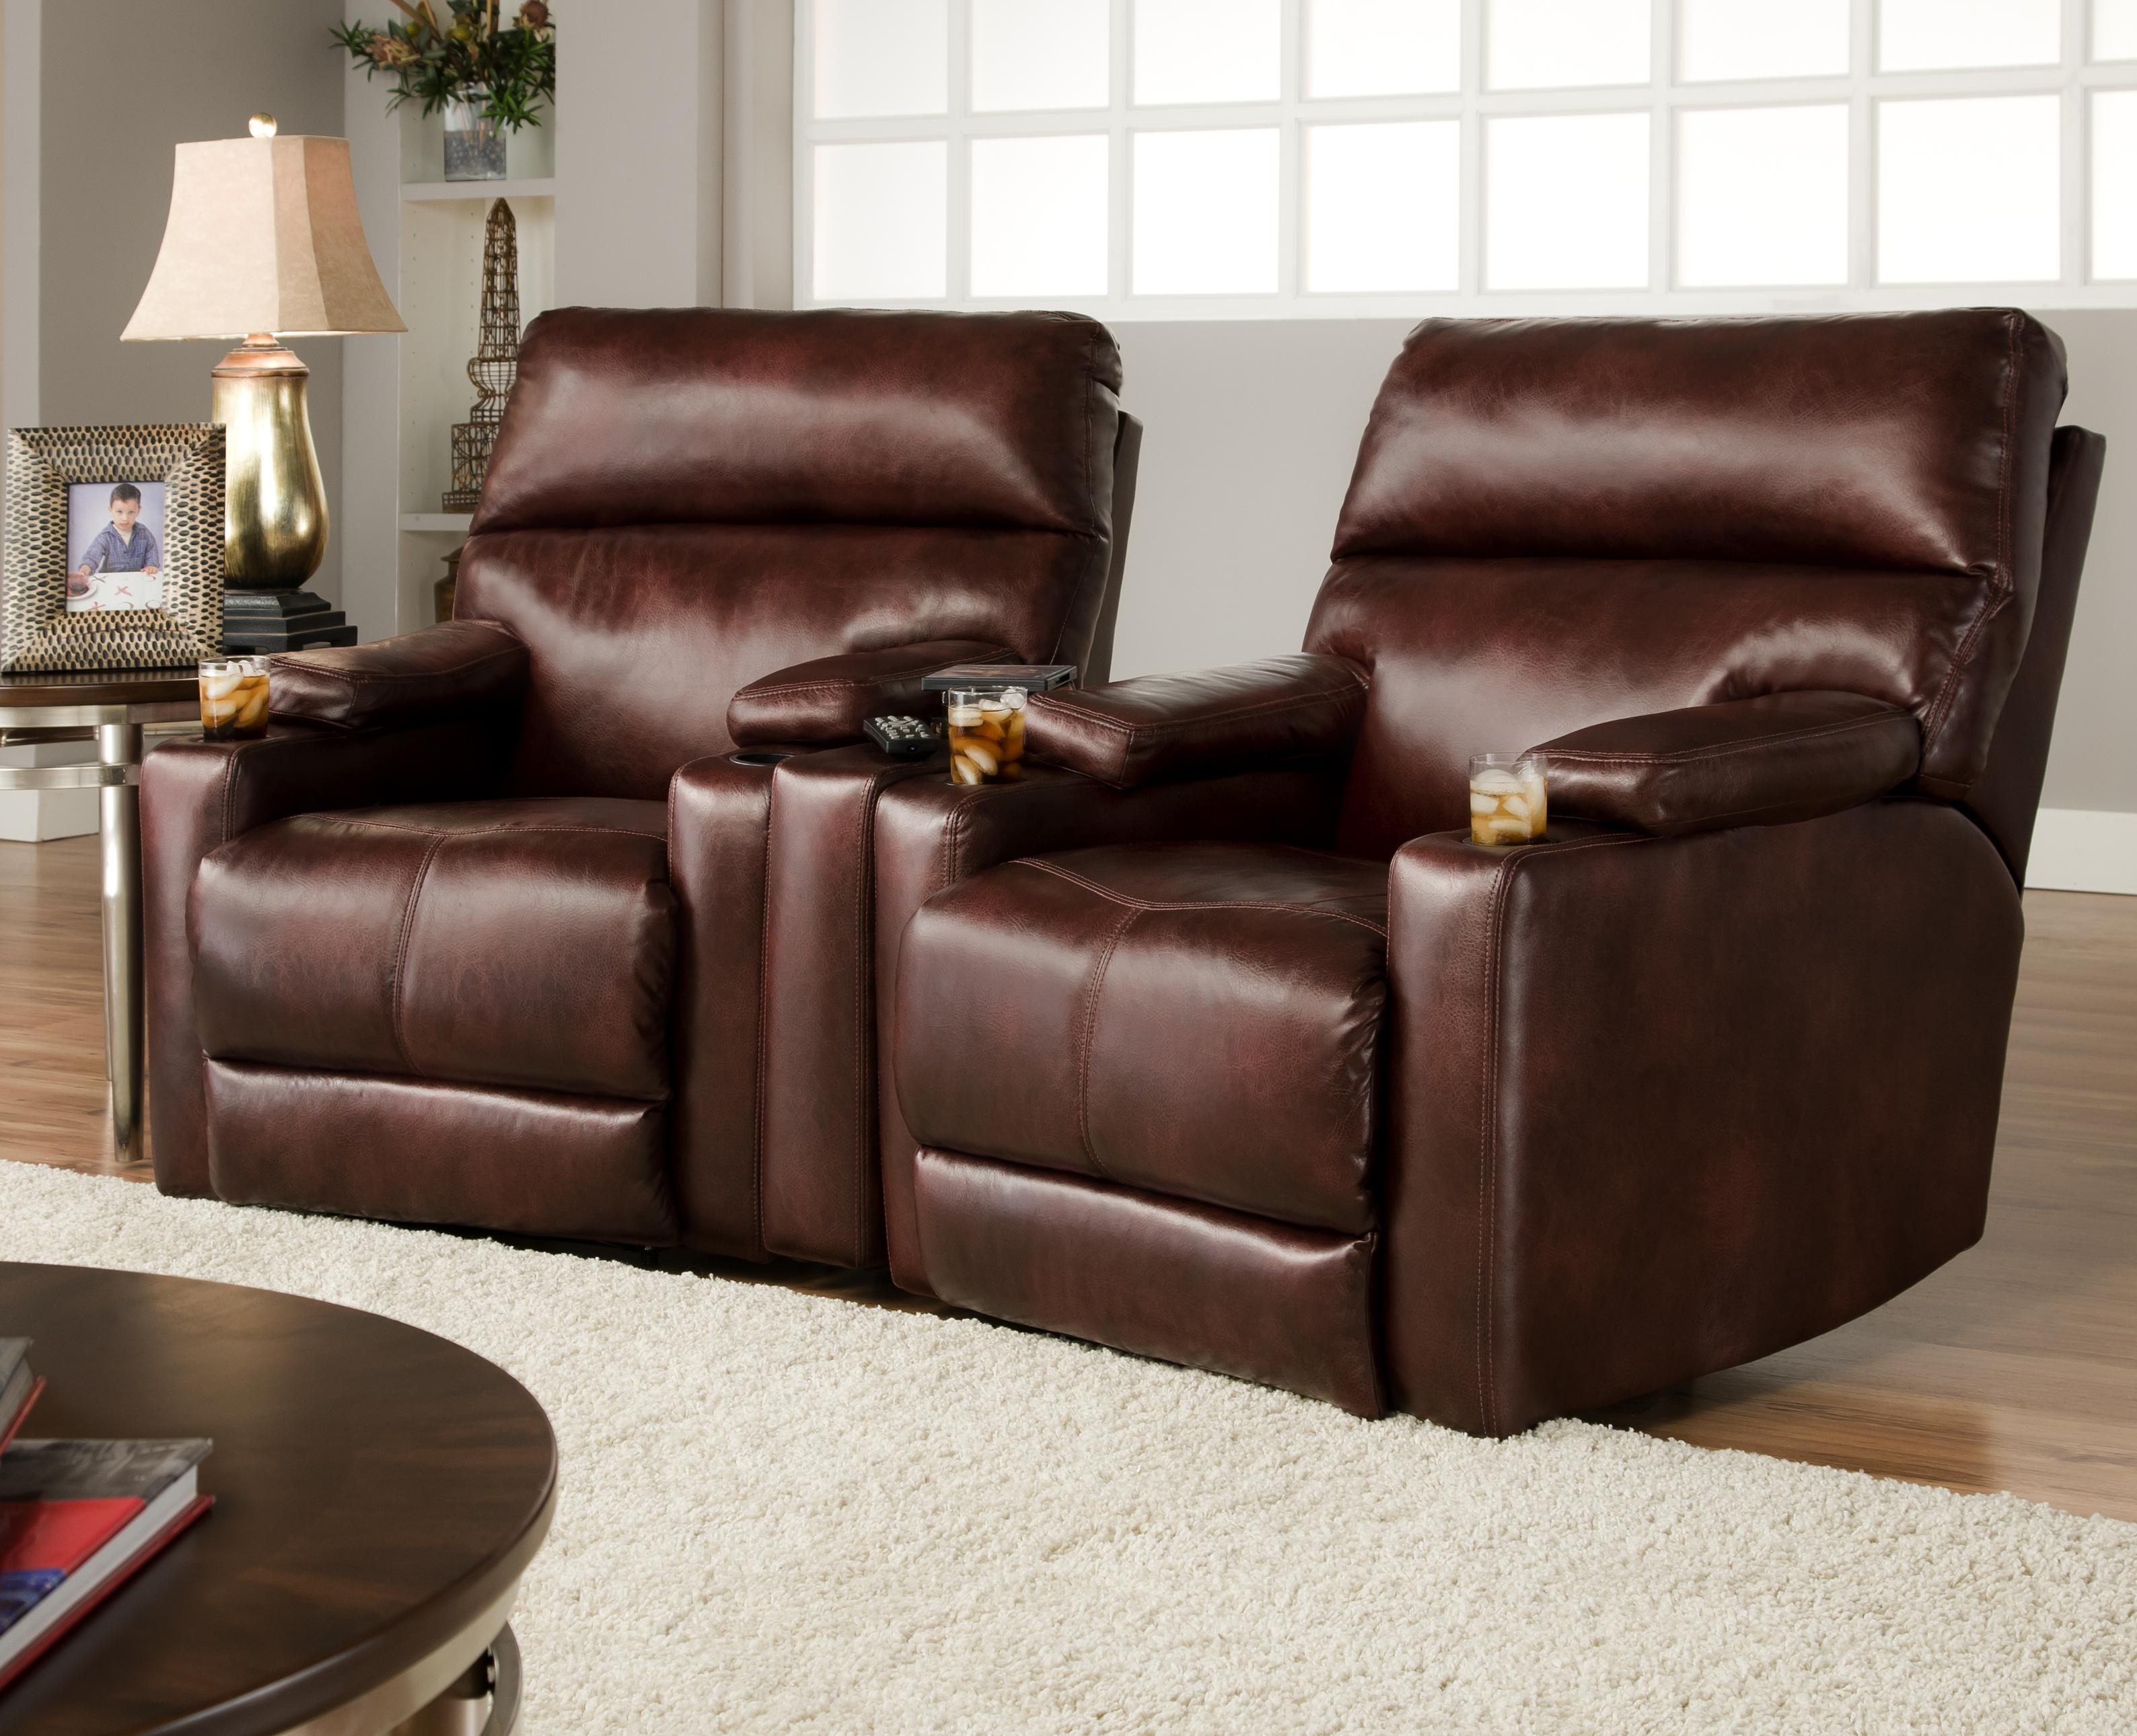 Theater Seating Group With 2 Lay Flat Recliners And Cup